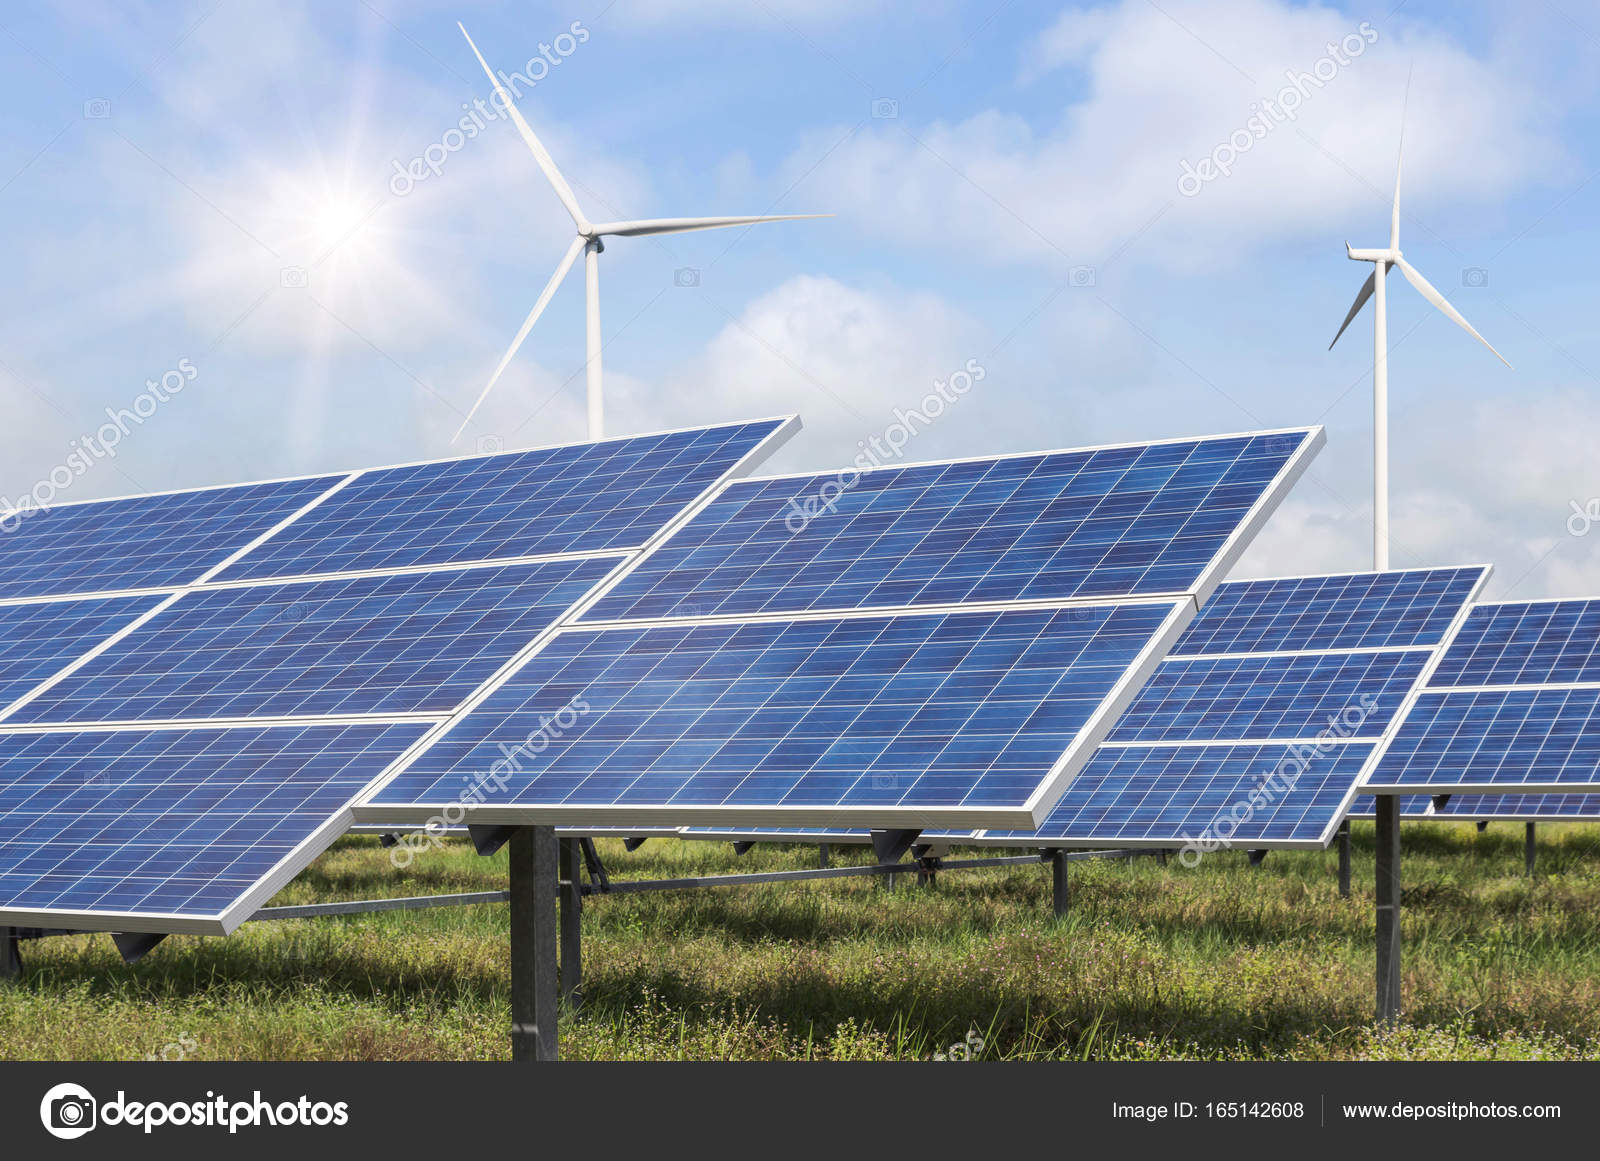 Solar Panels And Wind Turbines Generating Electricity Green Energy Renewable Stock Photo